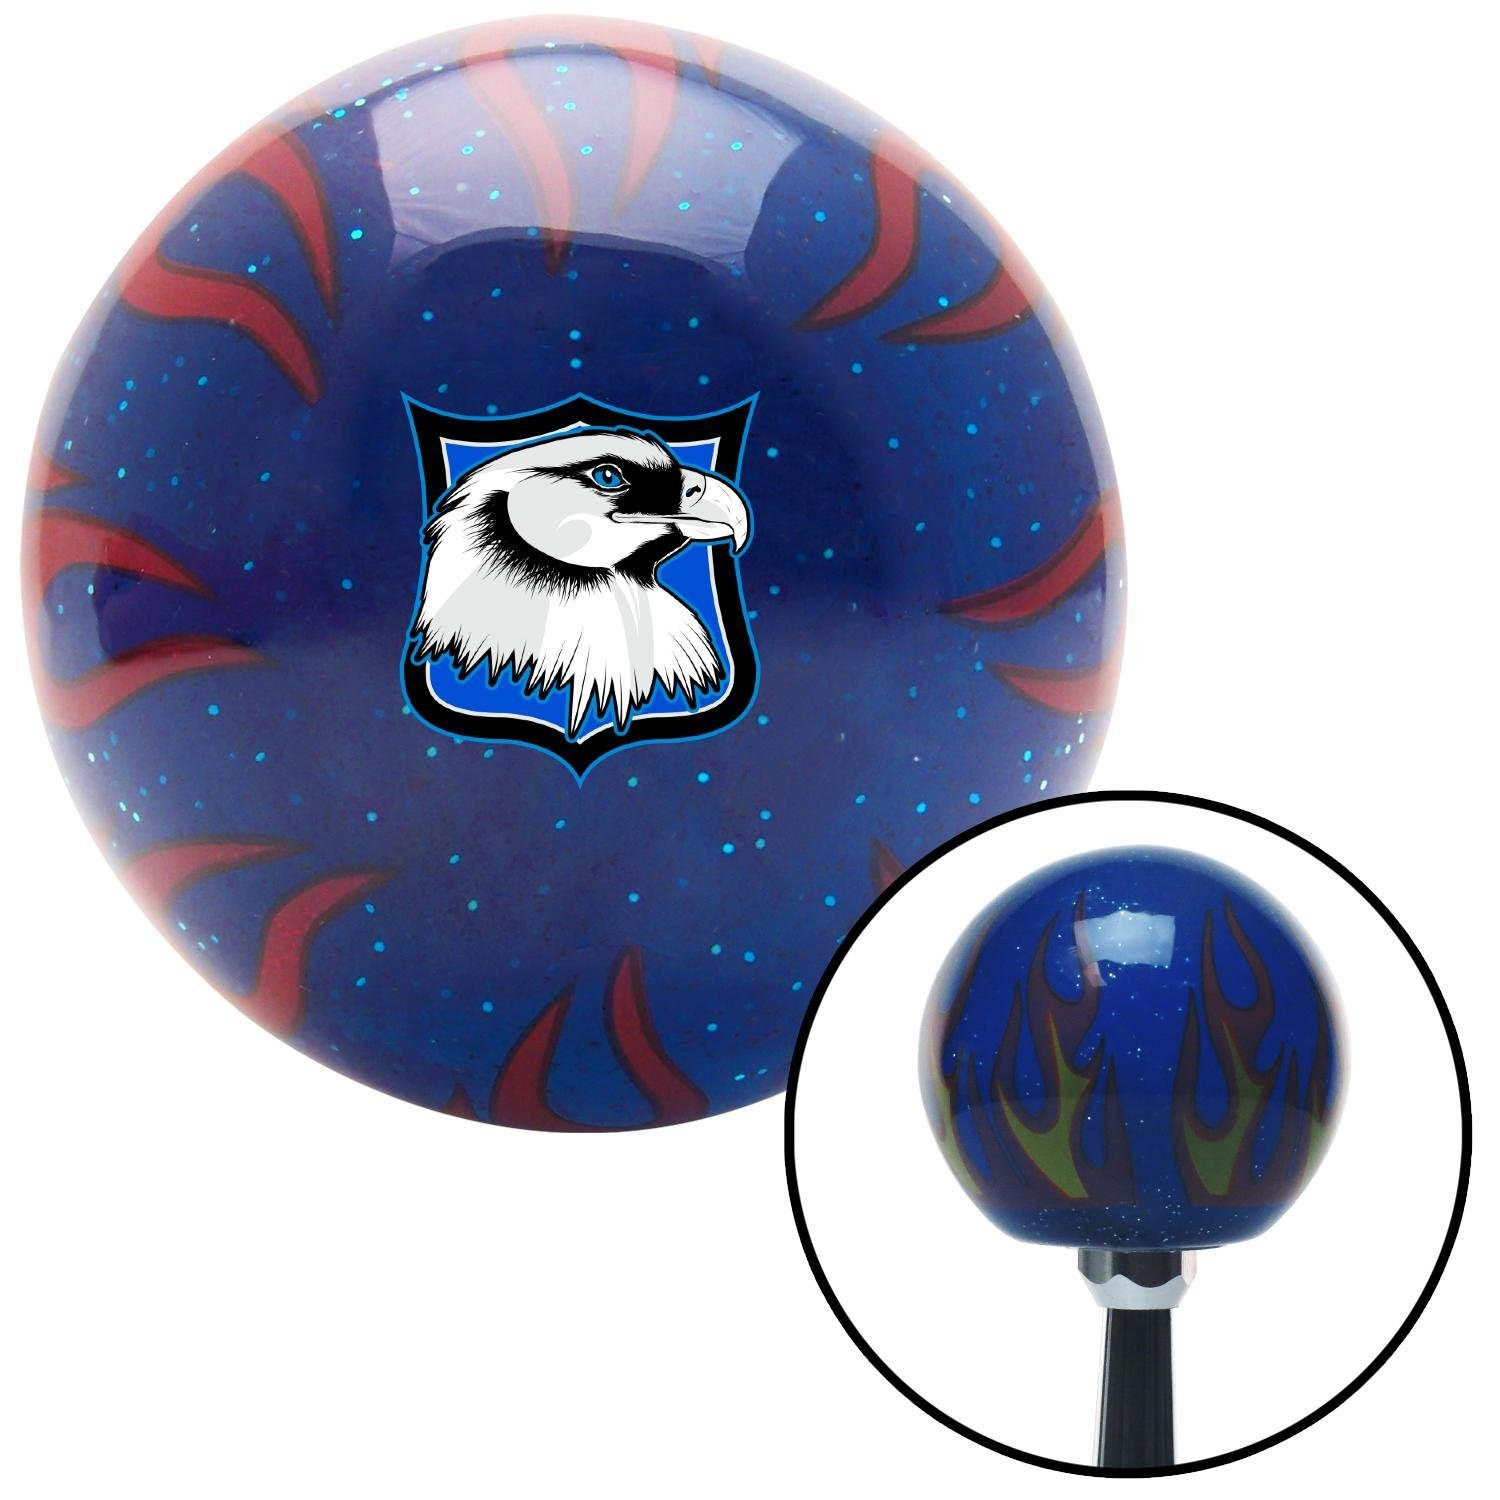 American Shifter 298053 Shift Knob Eagle Head Blue Flame Metal Flake with M16 x 1.5 Insert